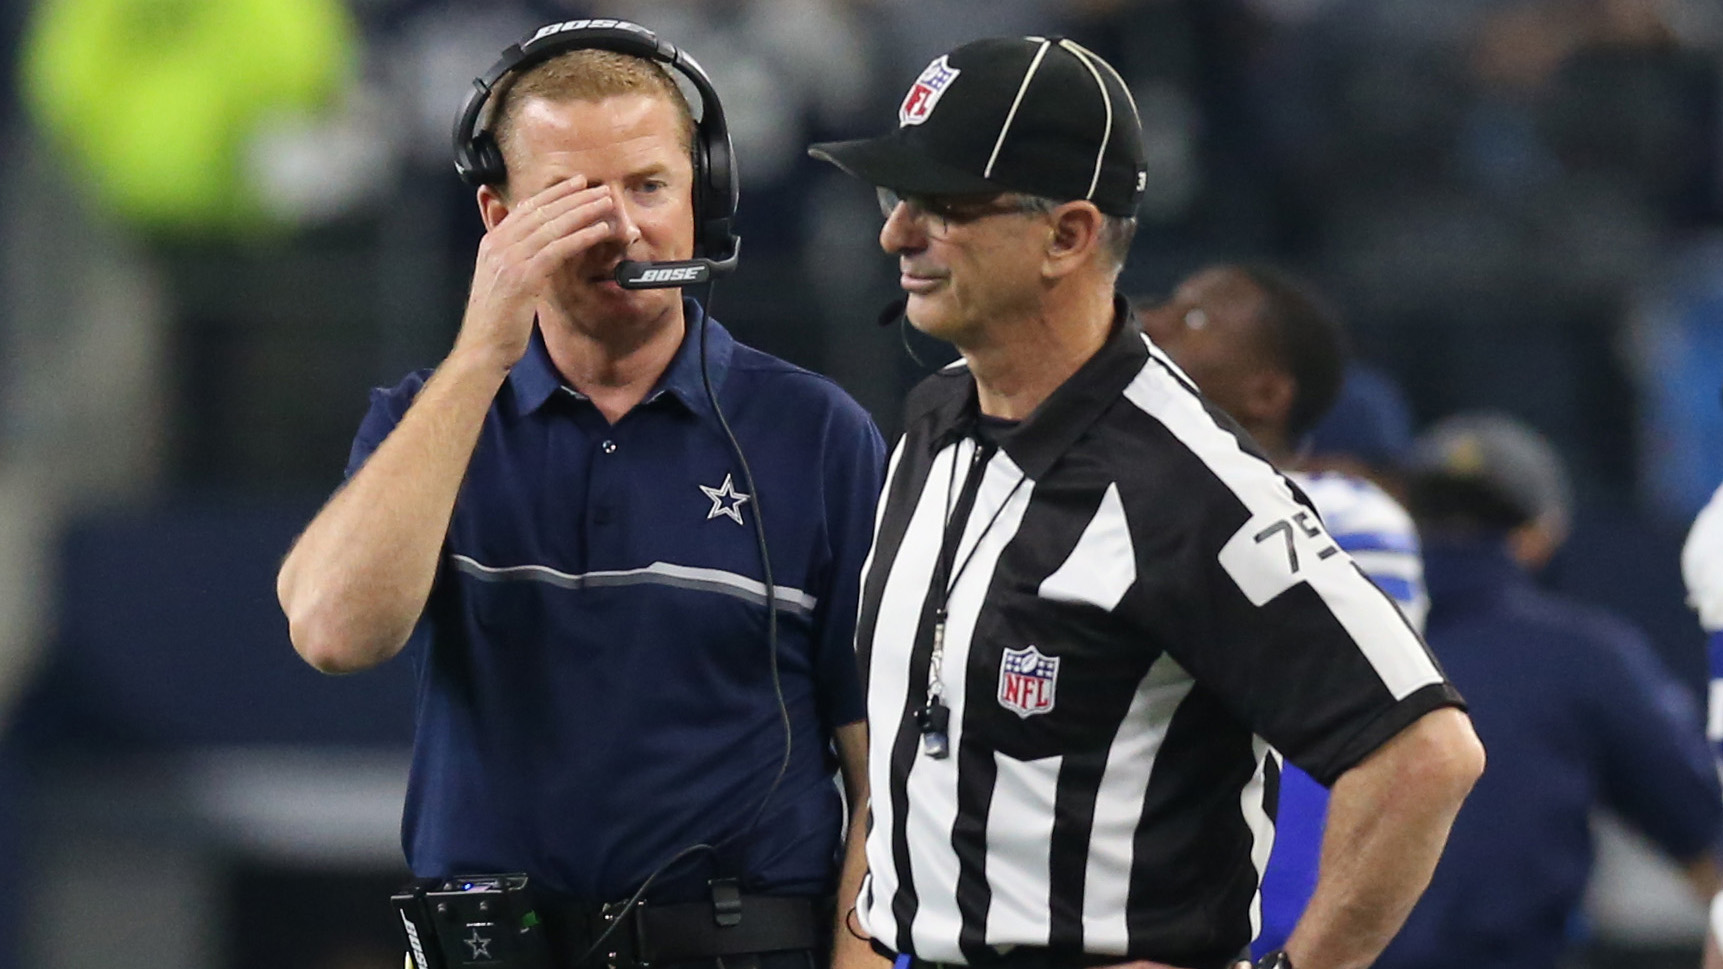 Conflicting reports: Did NFL admit mistake in crucial penalty against Cowboys?